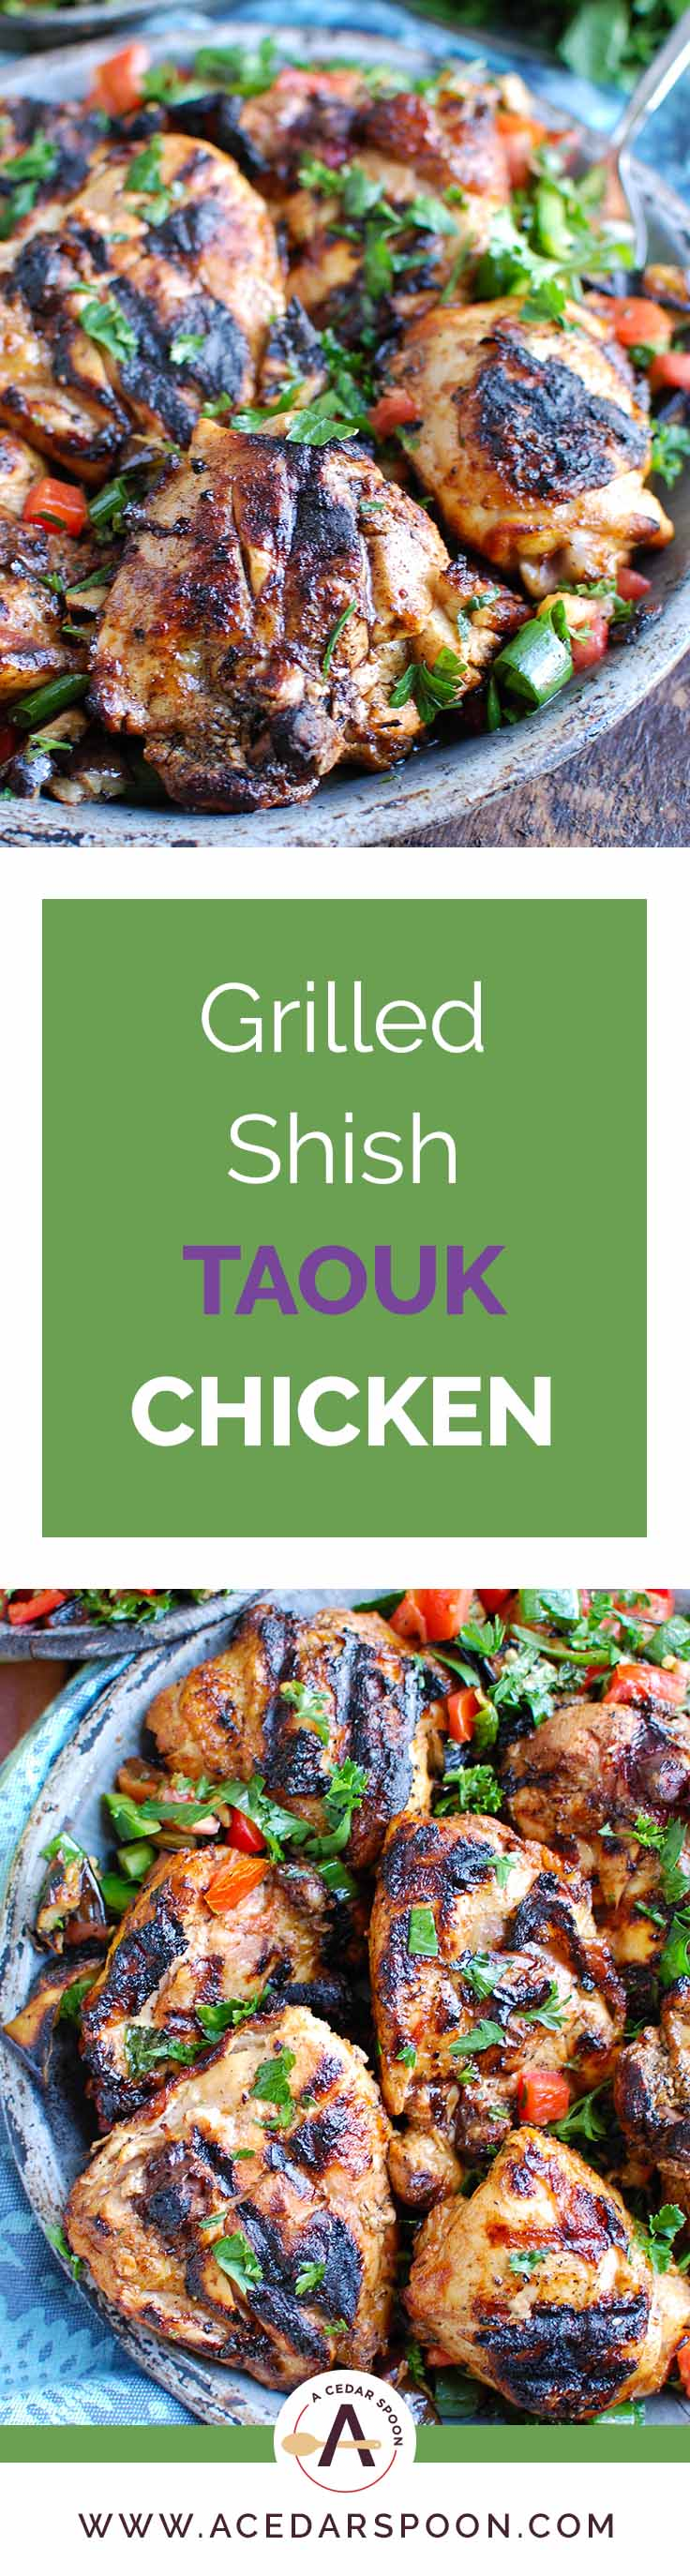 Shish Taouk Chicken Thighs with Mediterranean Eggplant Salad